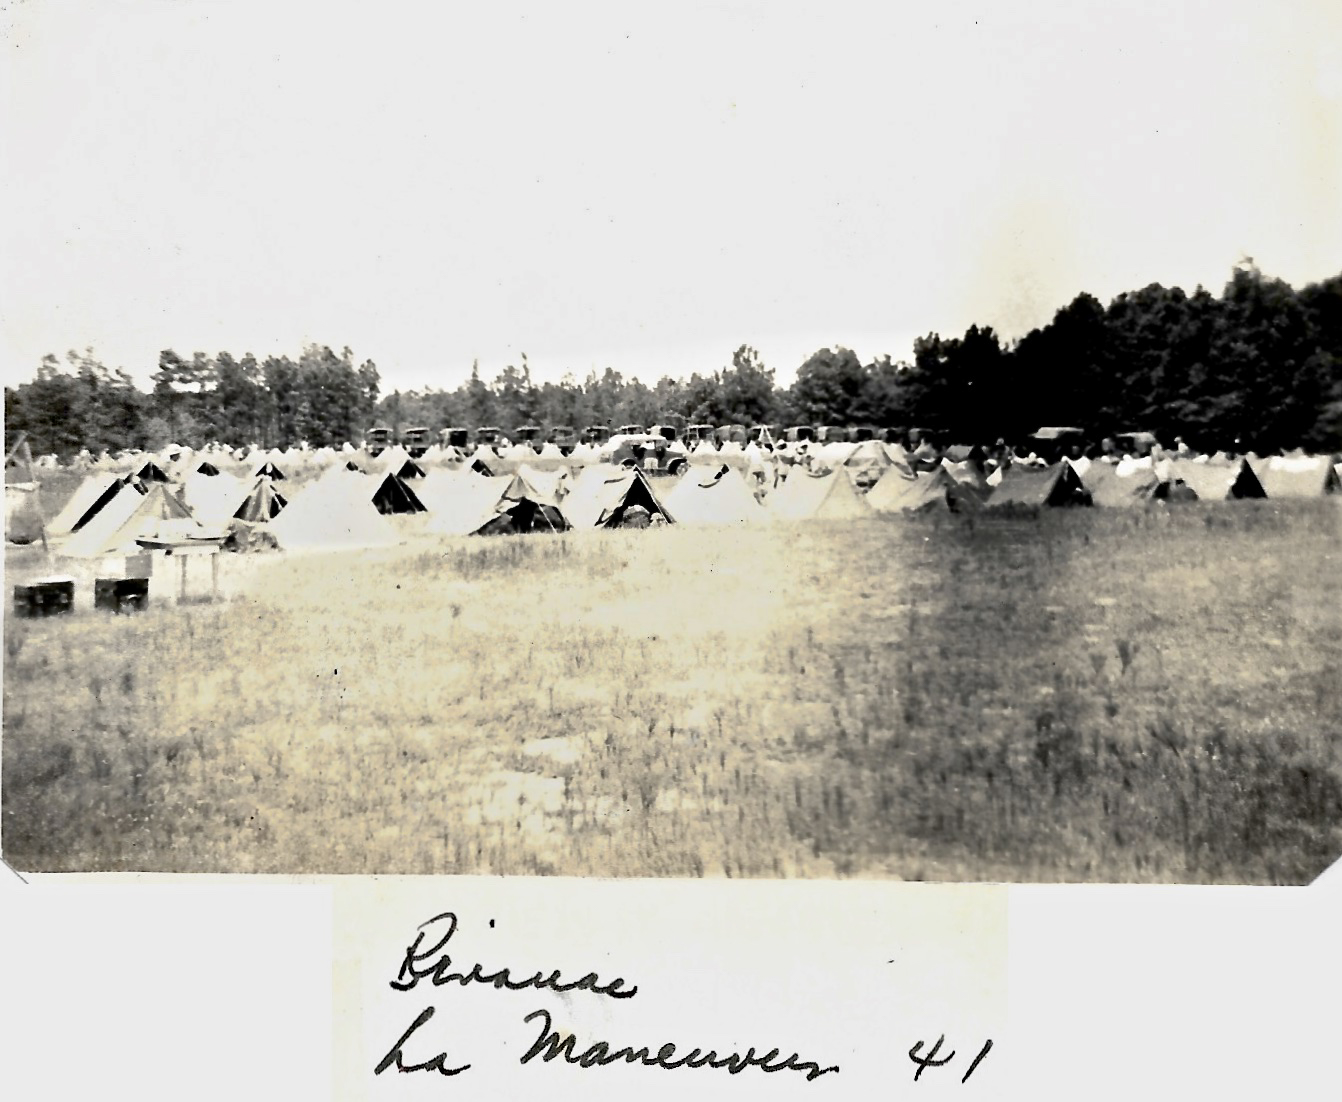 1941 Louisiana Maneuvers Tents and vehicles in field